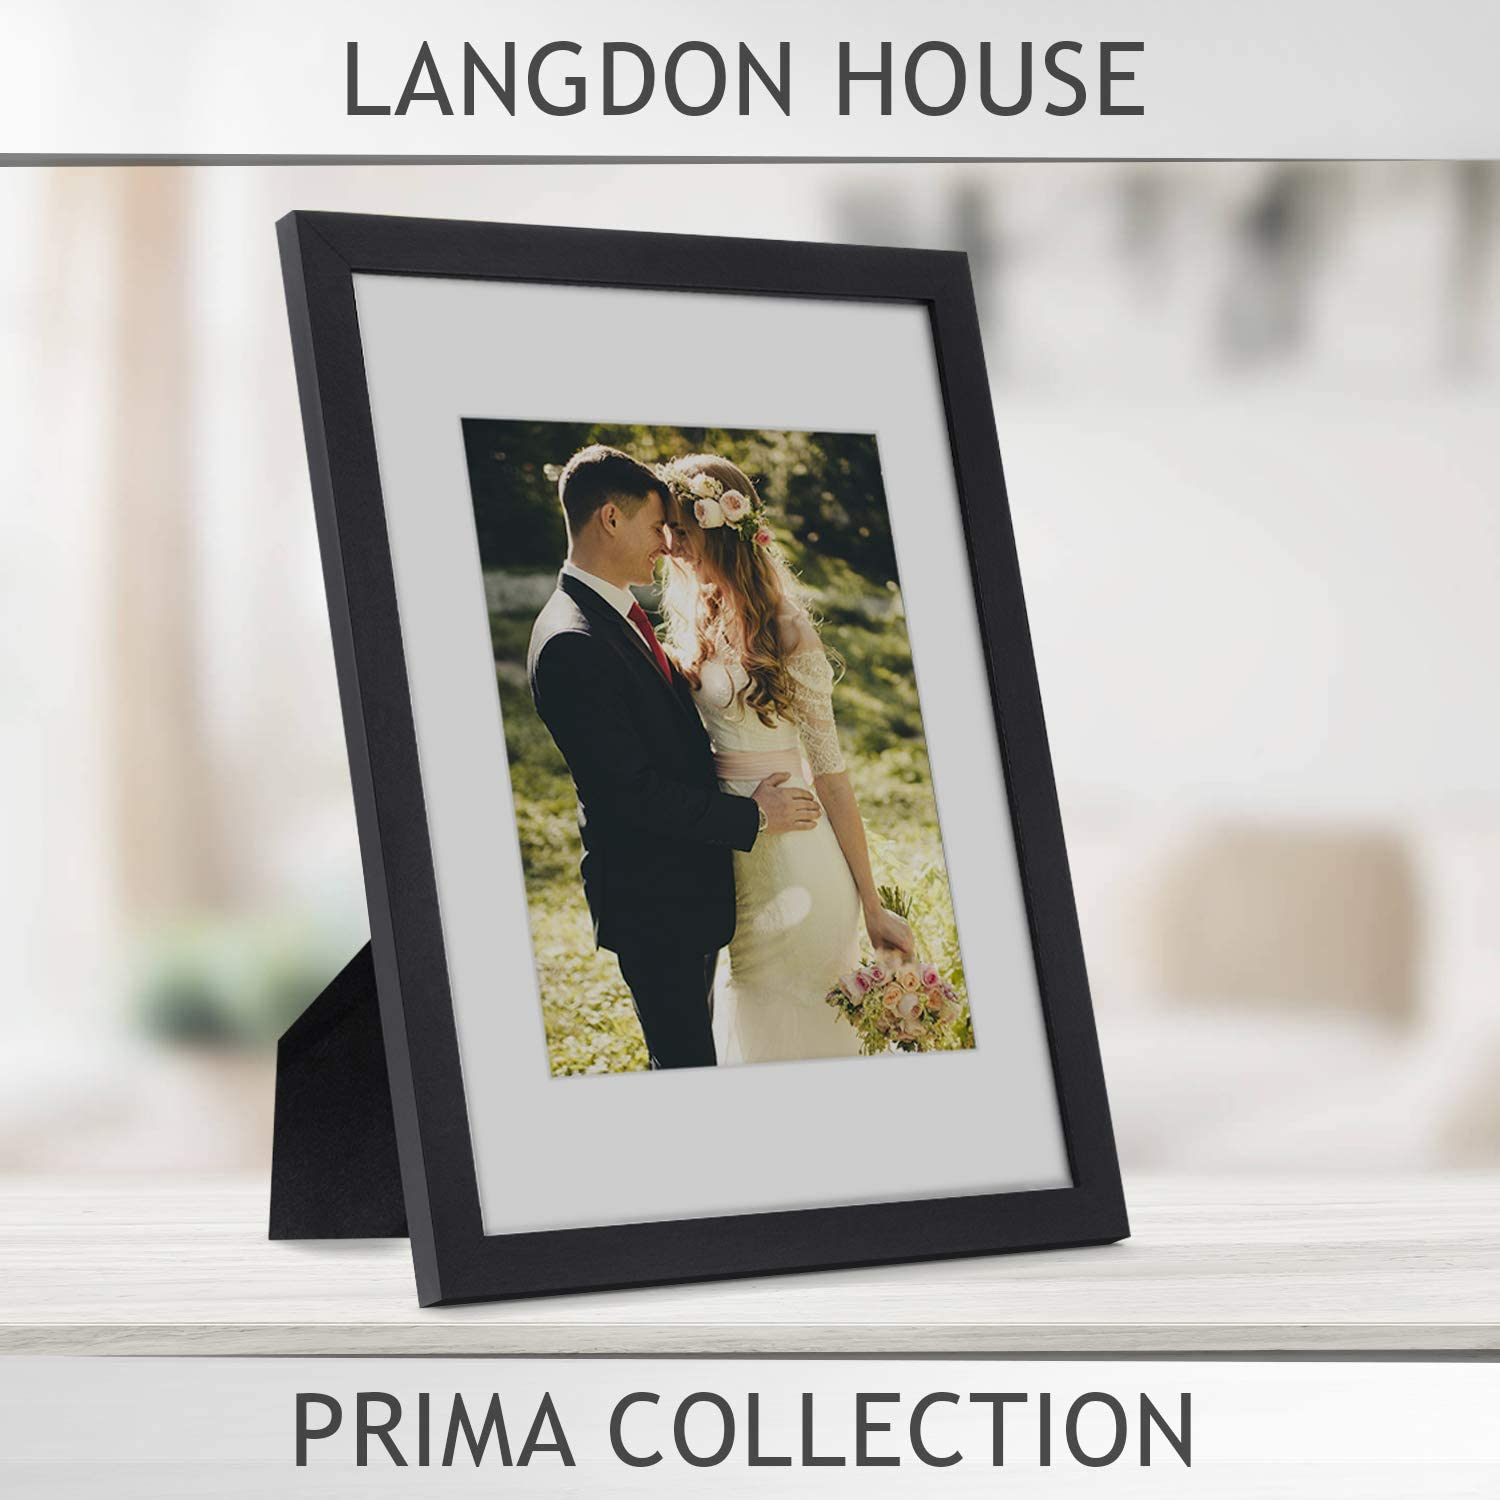 Langdon House 11x14 Frame Black 1 Pack 11 X 14 Photo Frame With Mat For 5x7 Picture Sturdy Wood Composite Wall Mount Hooks Included With Black Picture Frames Prima Collection Www Hapoelb7 Co Il